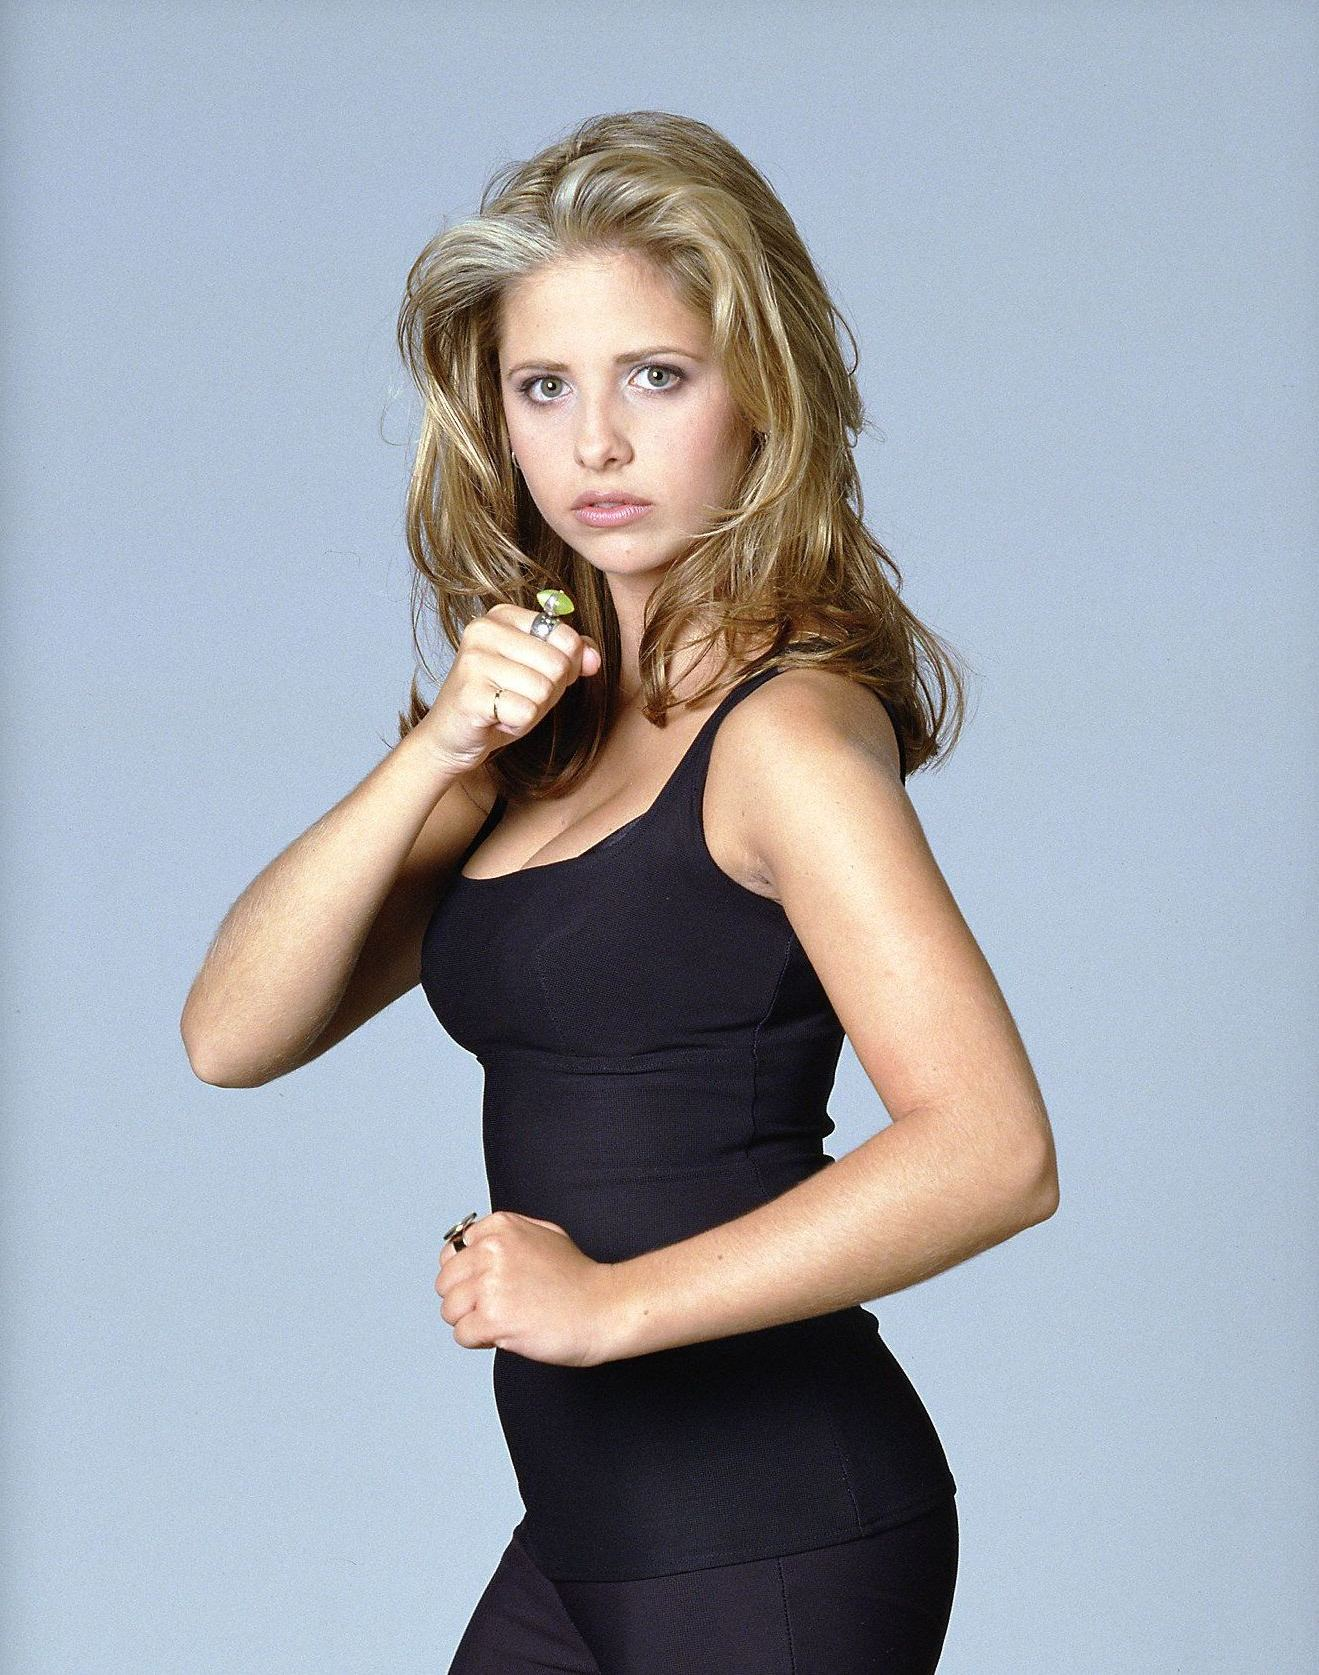 Sarah michelle gellar as buffy